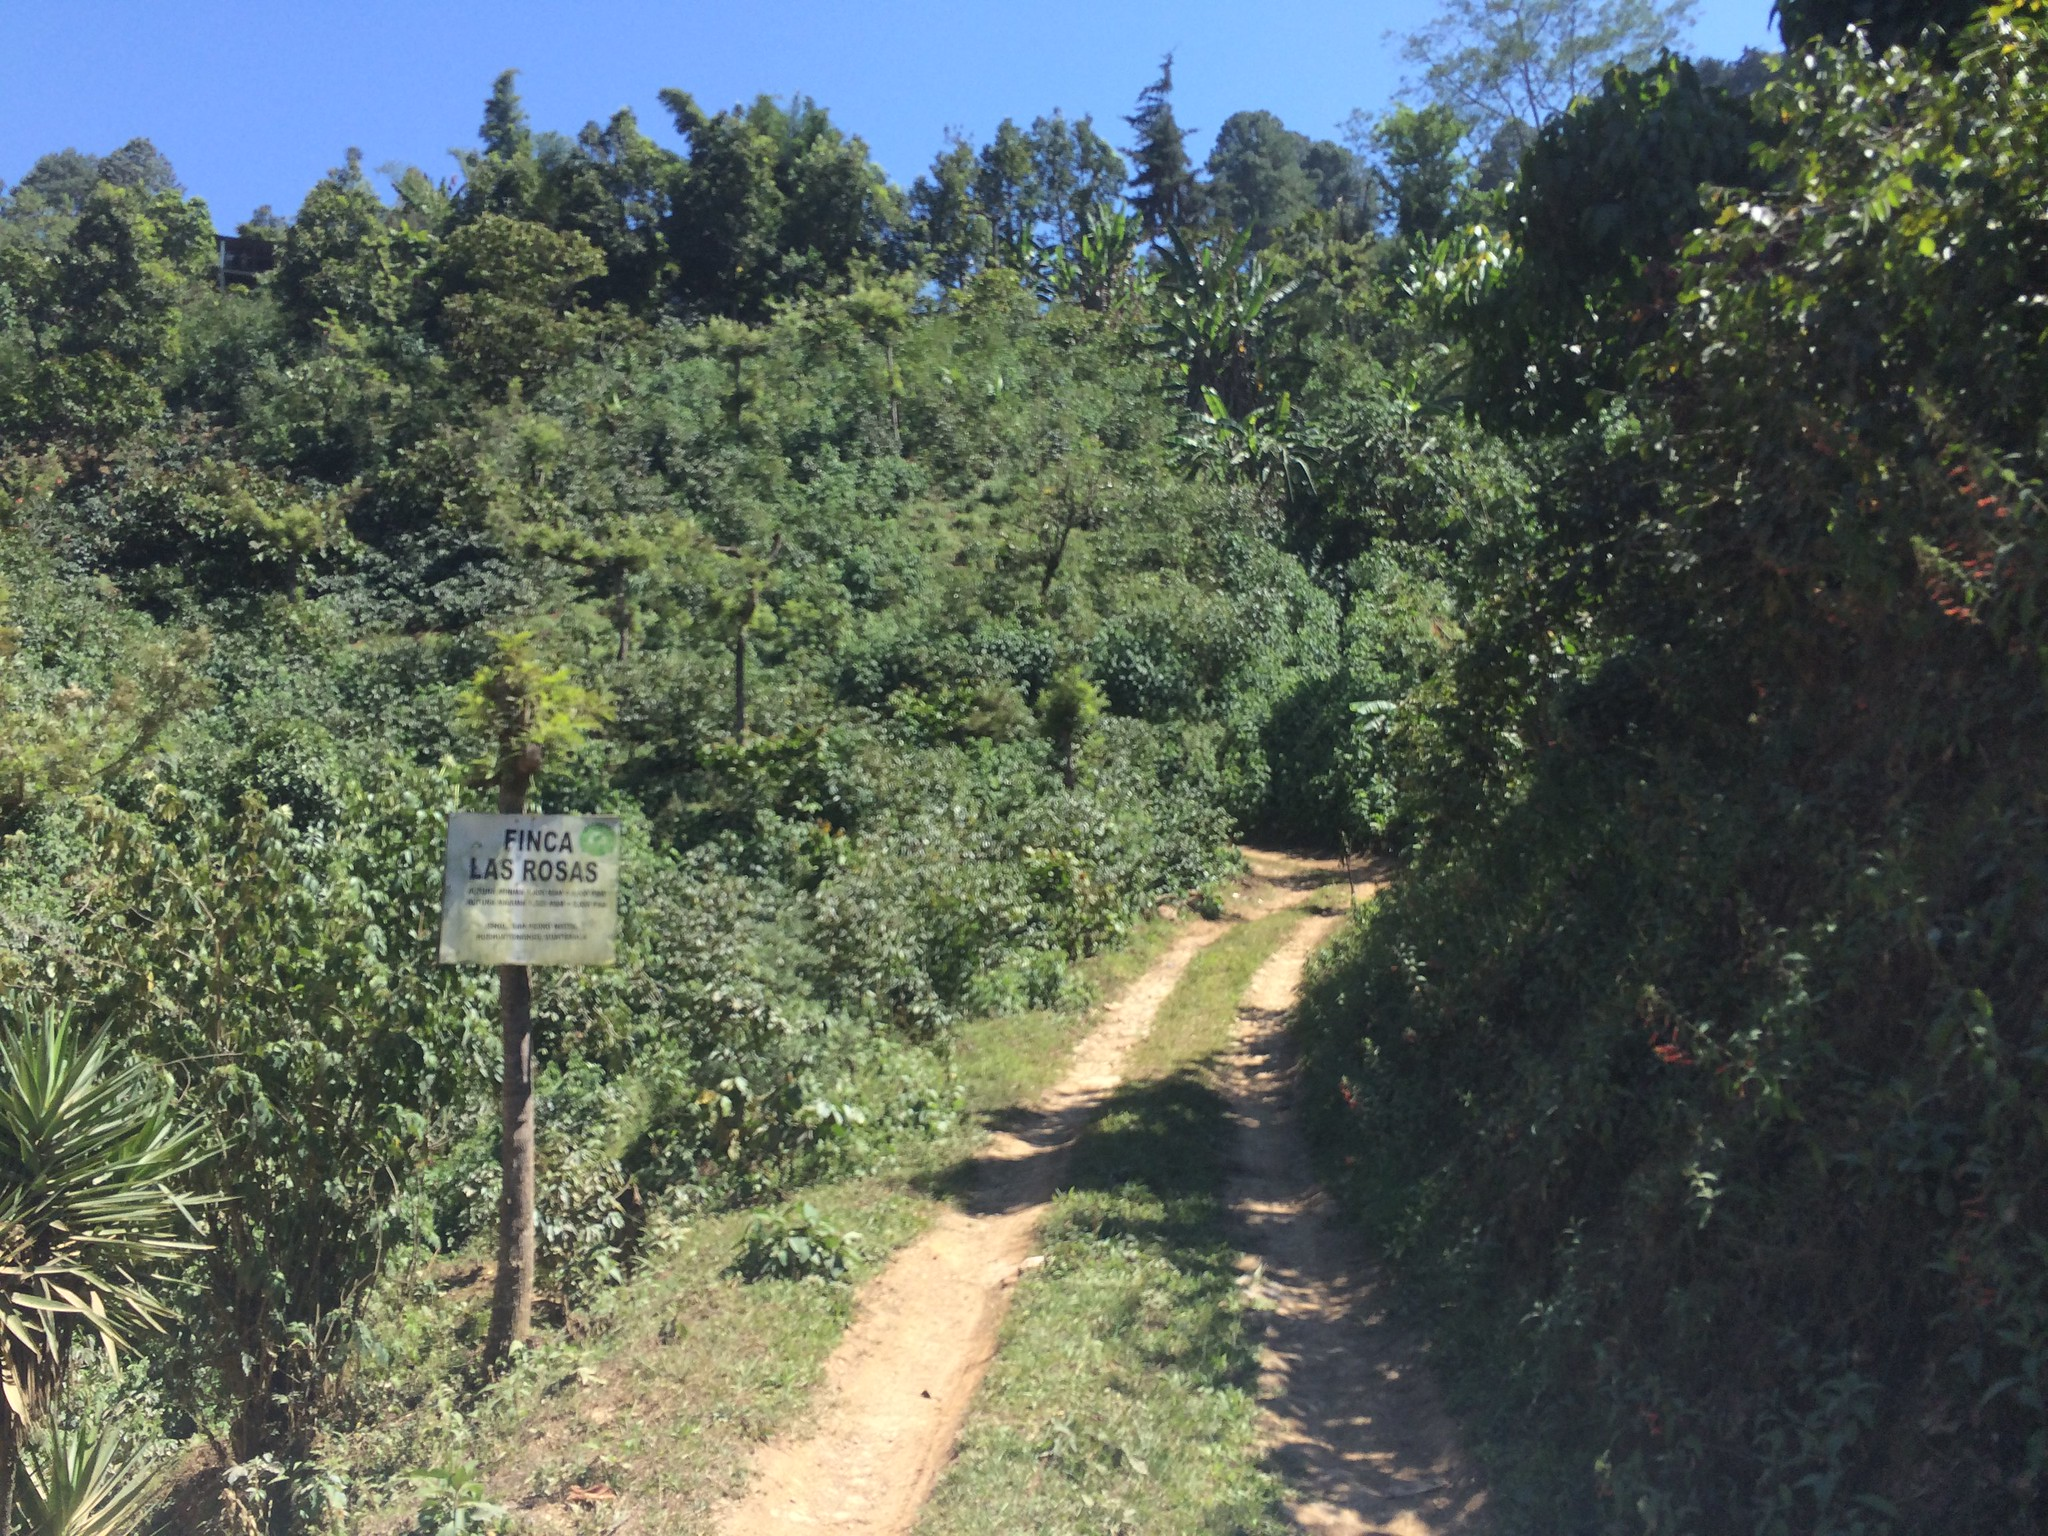 Entrance to Finca Las Rosas, Huehuetenango, Guatemala. Owned by Rolando Villatoro.